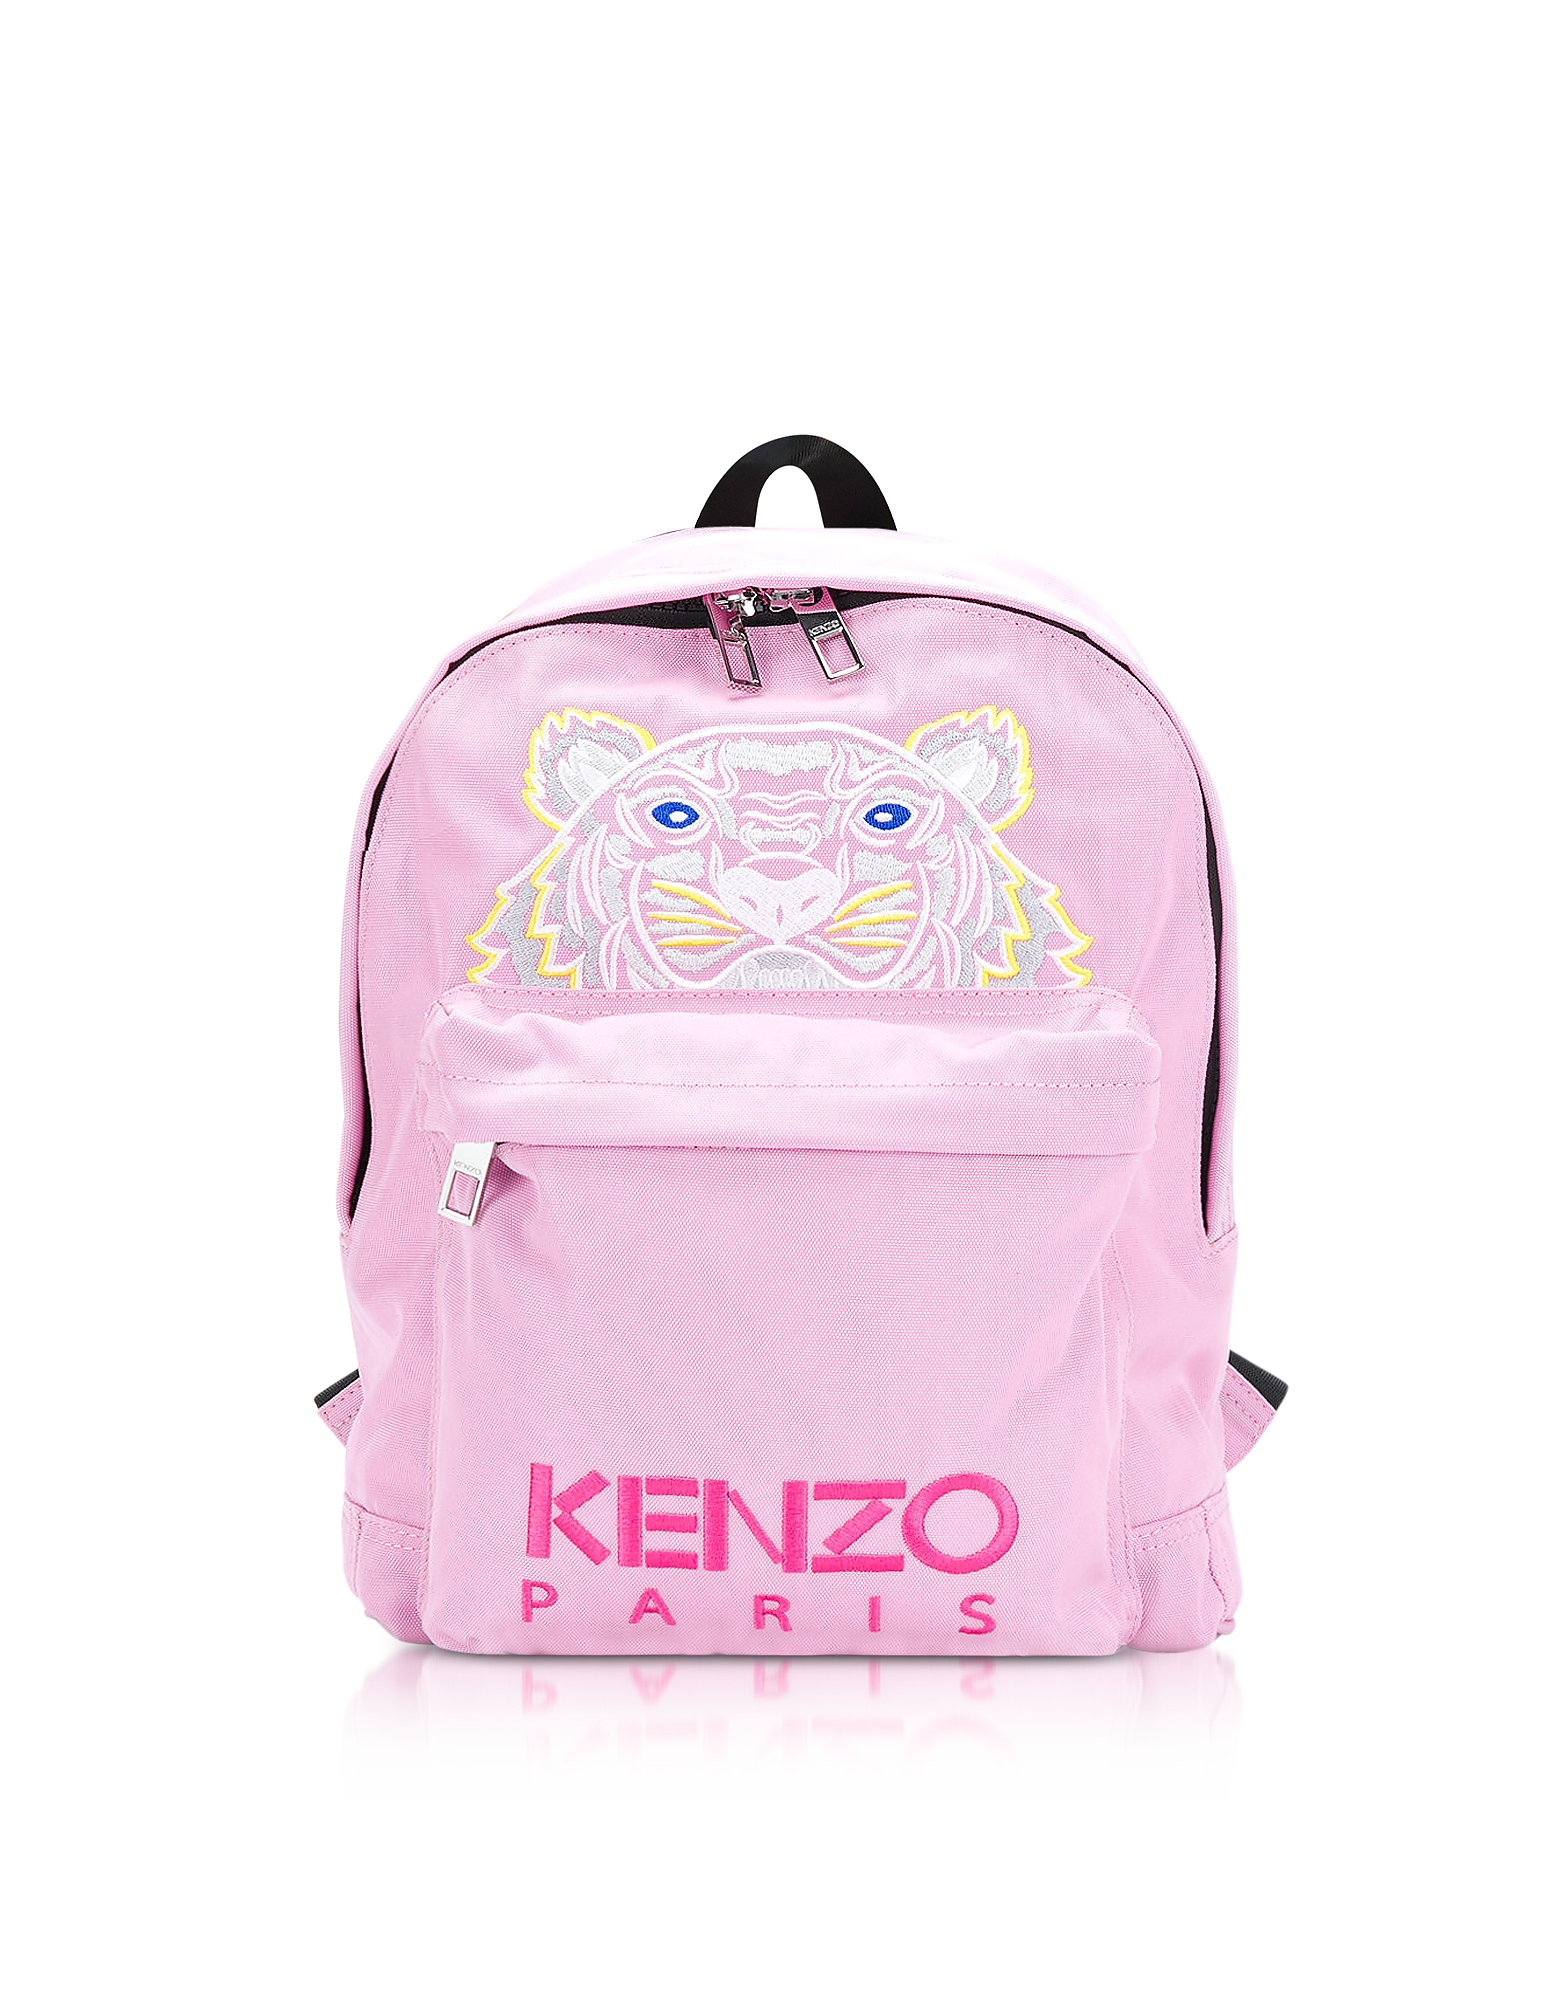 Kenzo Handbags, Flamingo Pink Canvas Medium Tiger Backpack